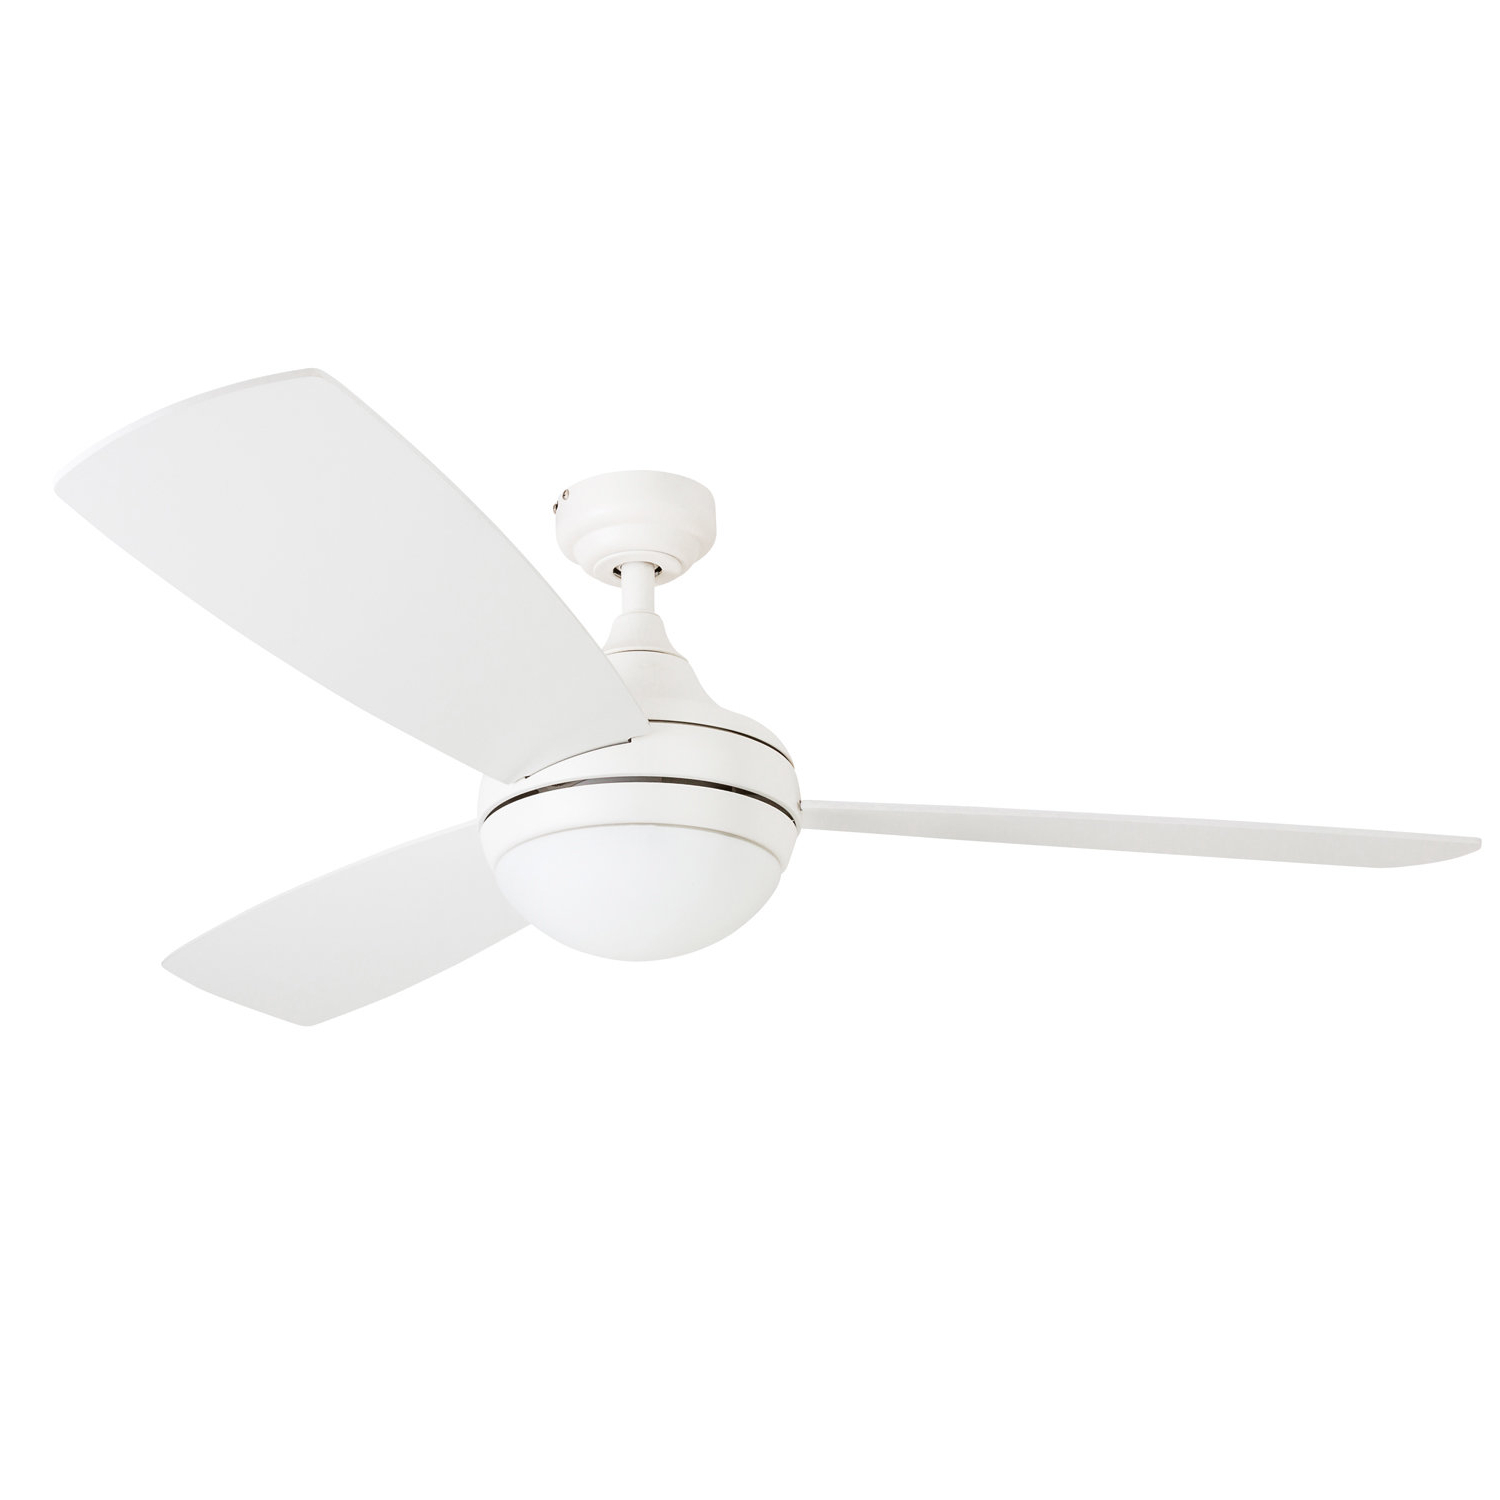 "Wrought Studio 52"" Alyce 3 Blade Led Ceiling Fan With Remote Control For Current Alyce 3 Blade Led Ceiling Fans With Remote Control (View 19 of 20)"